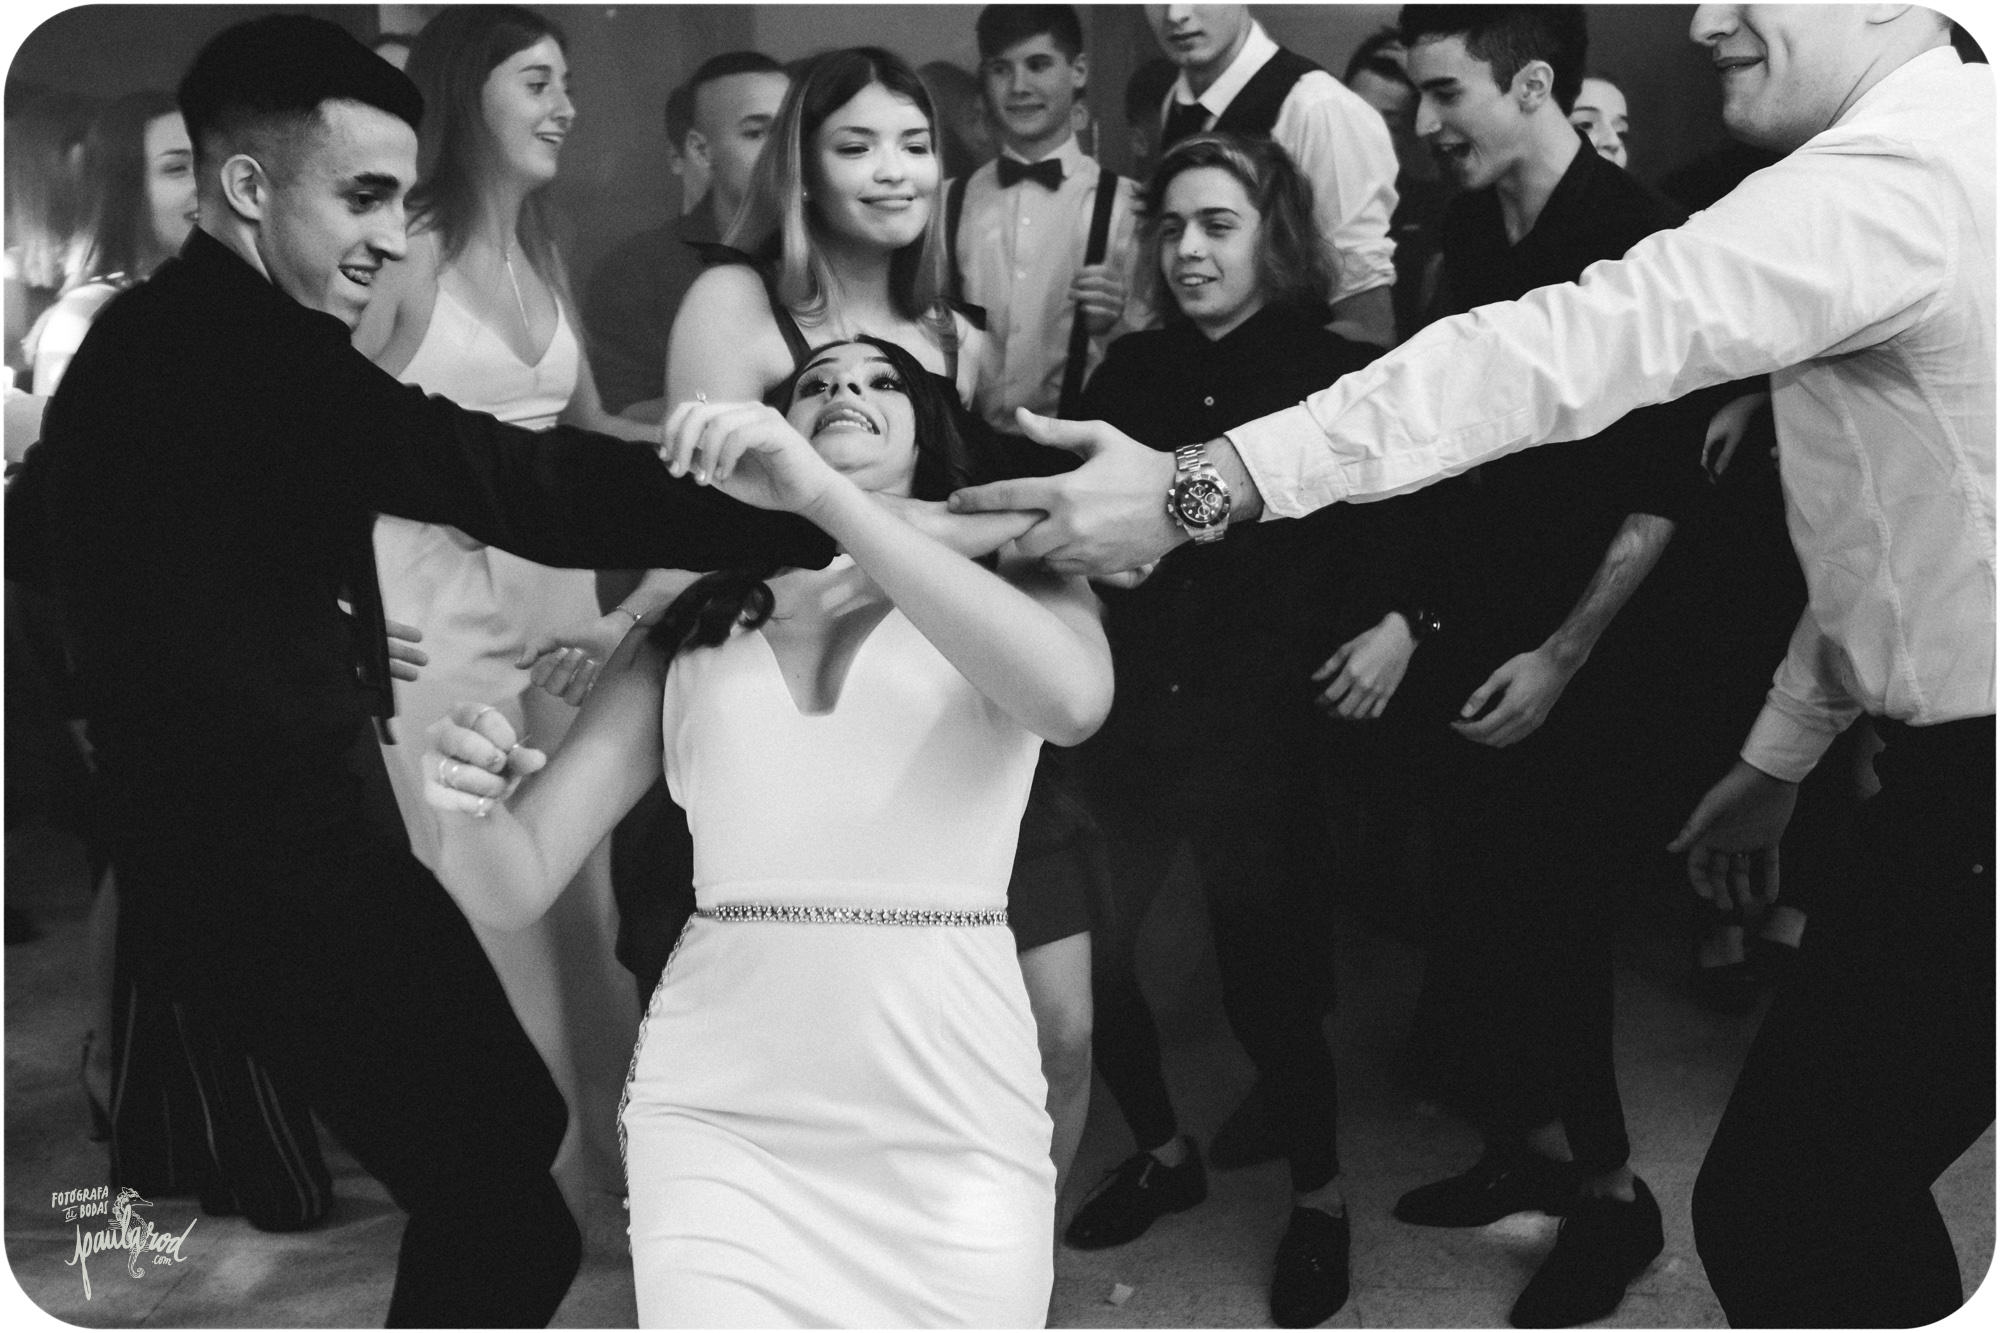 fotografia-documental-para-eventos-sociales-2.jpg